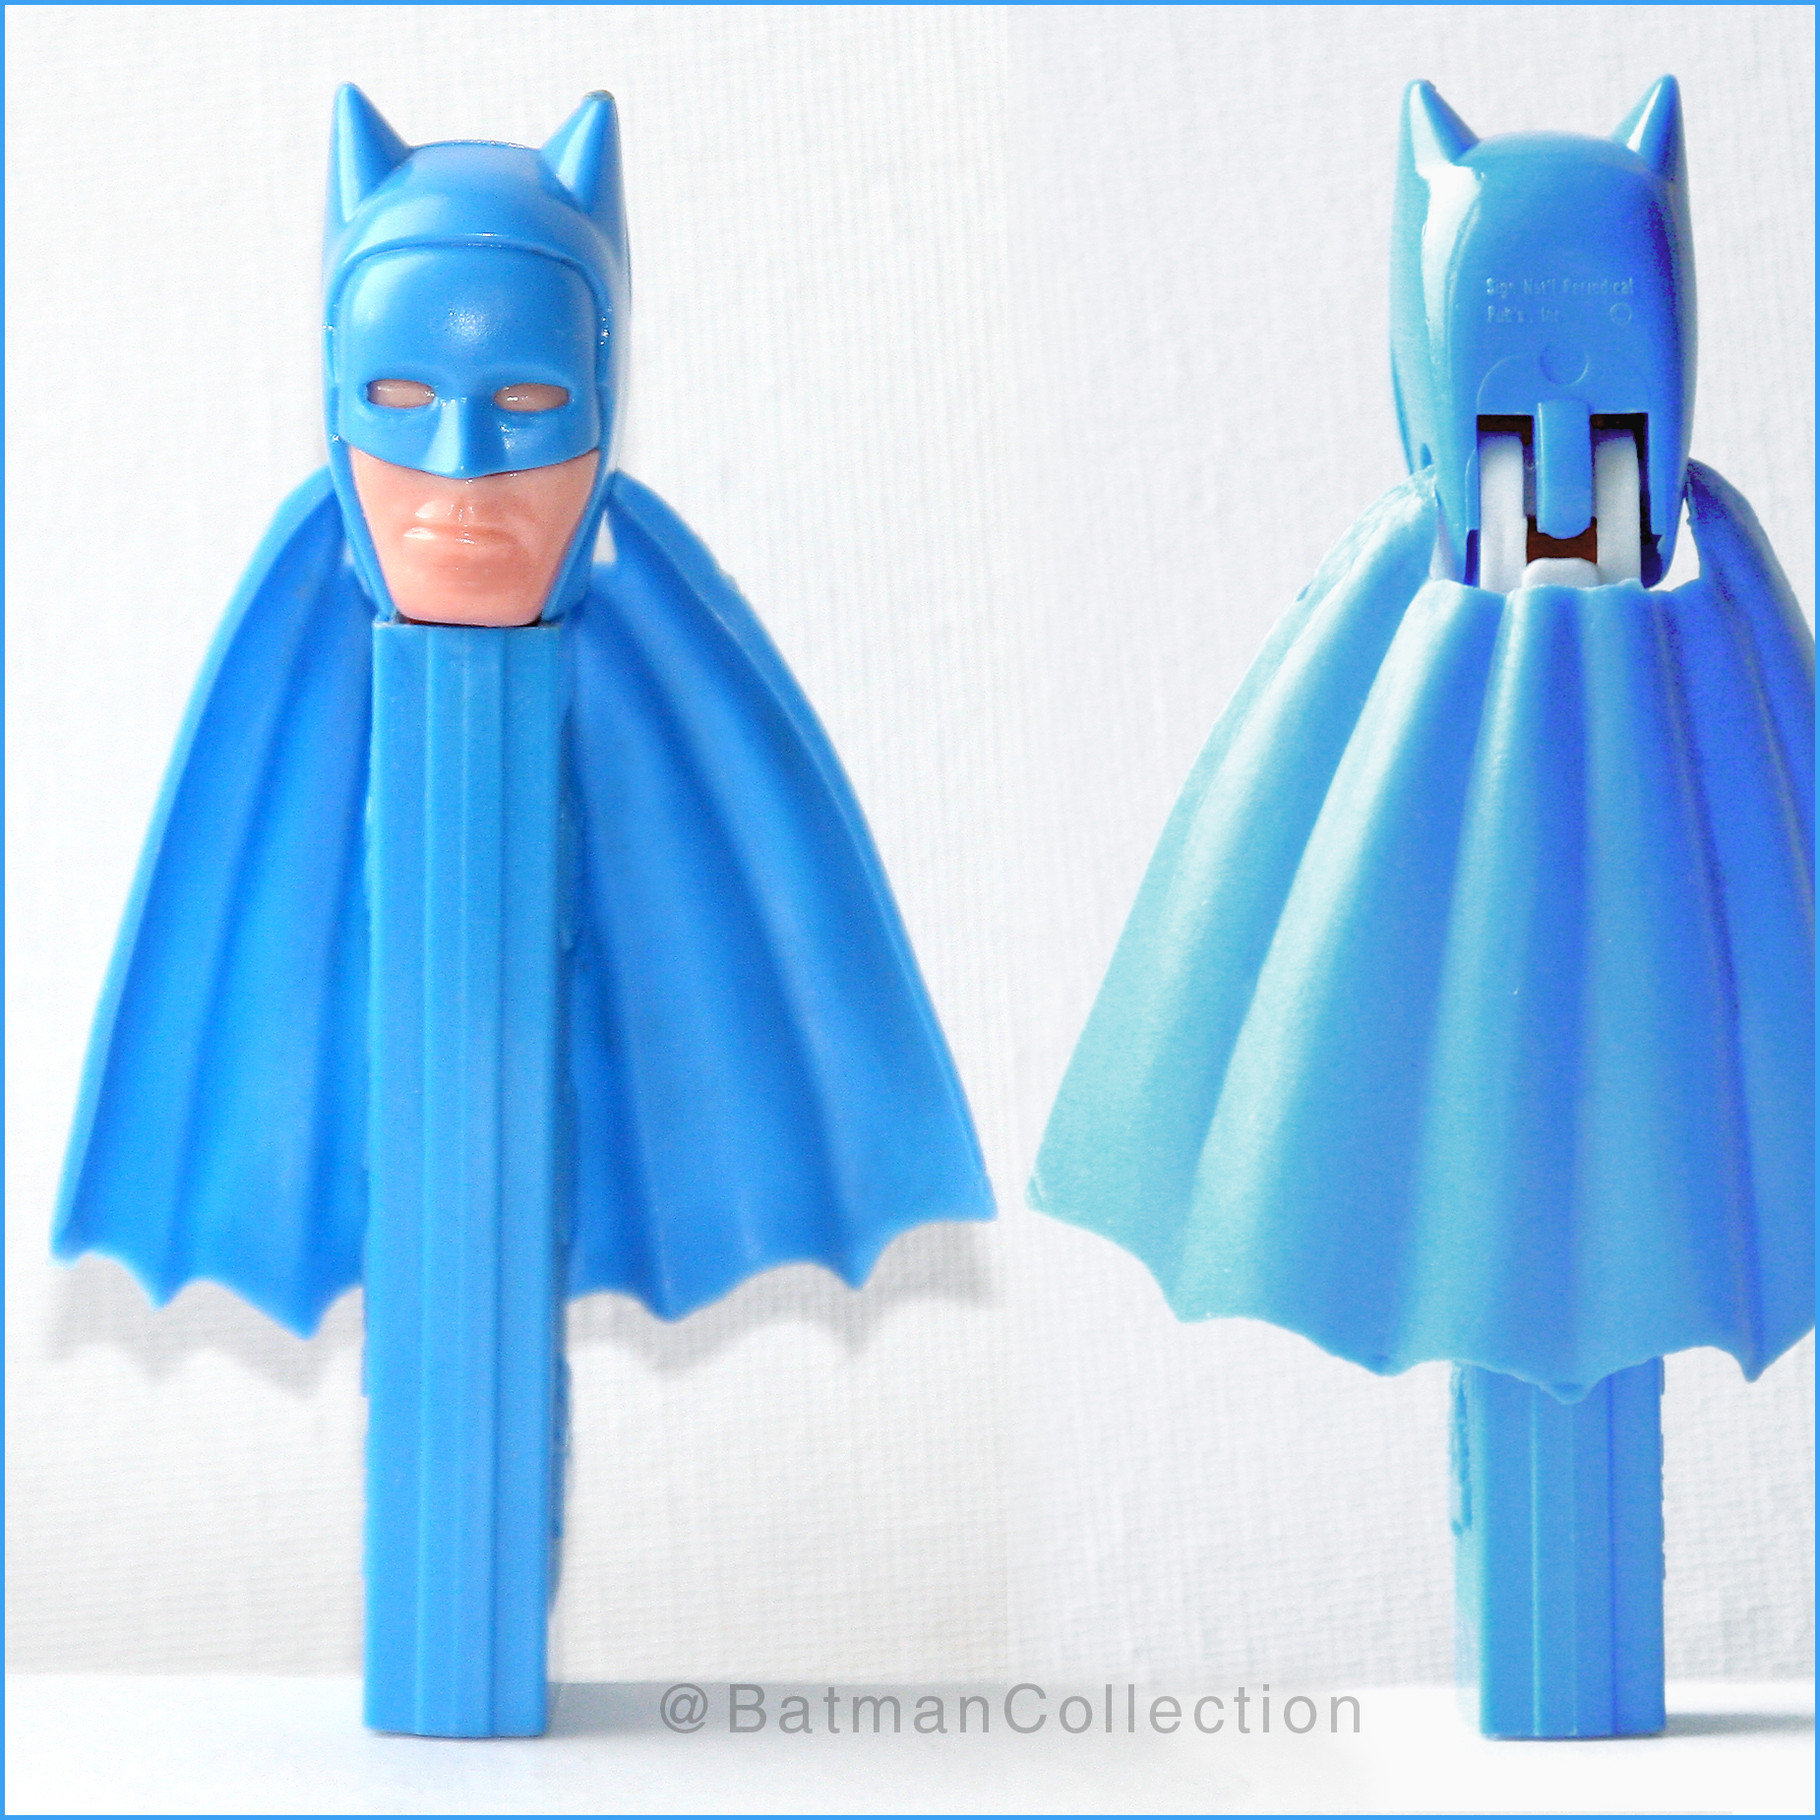 Gallery 1 A Swedish Batman Collection En Svensk